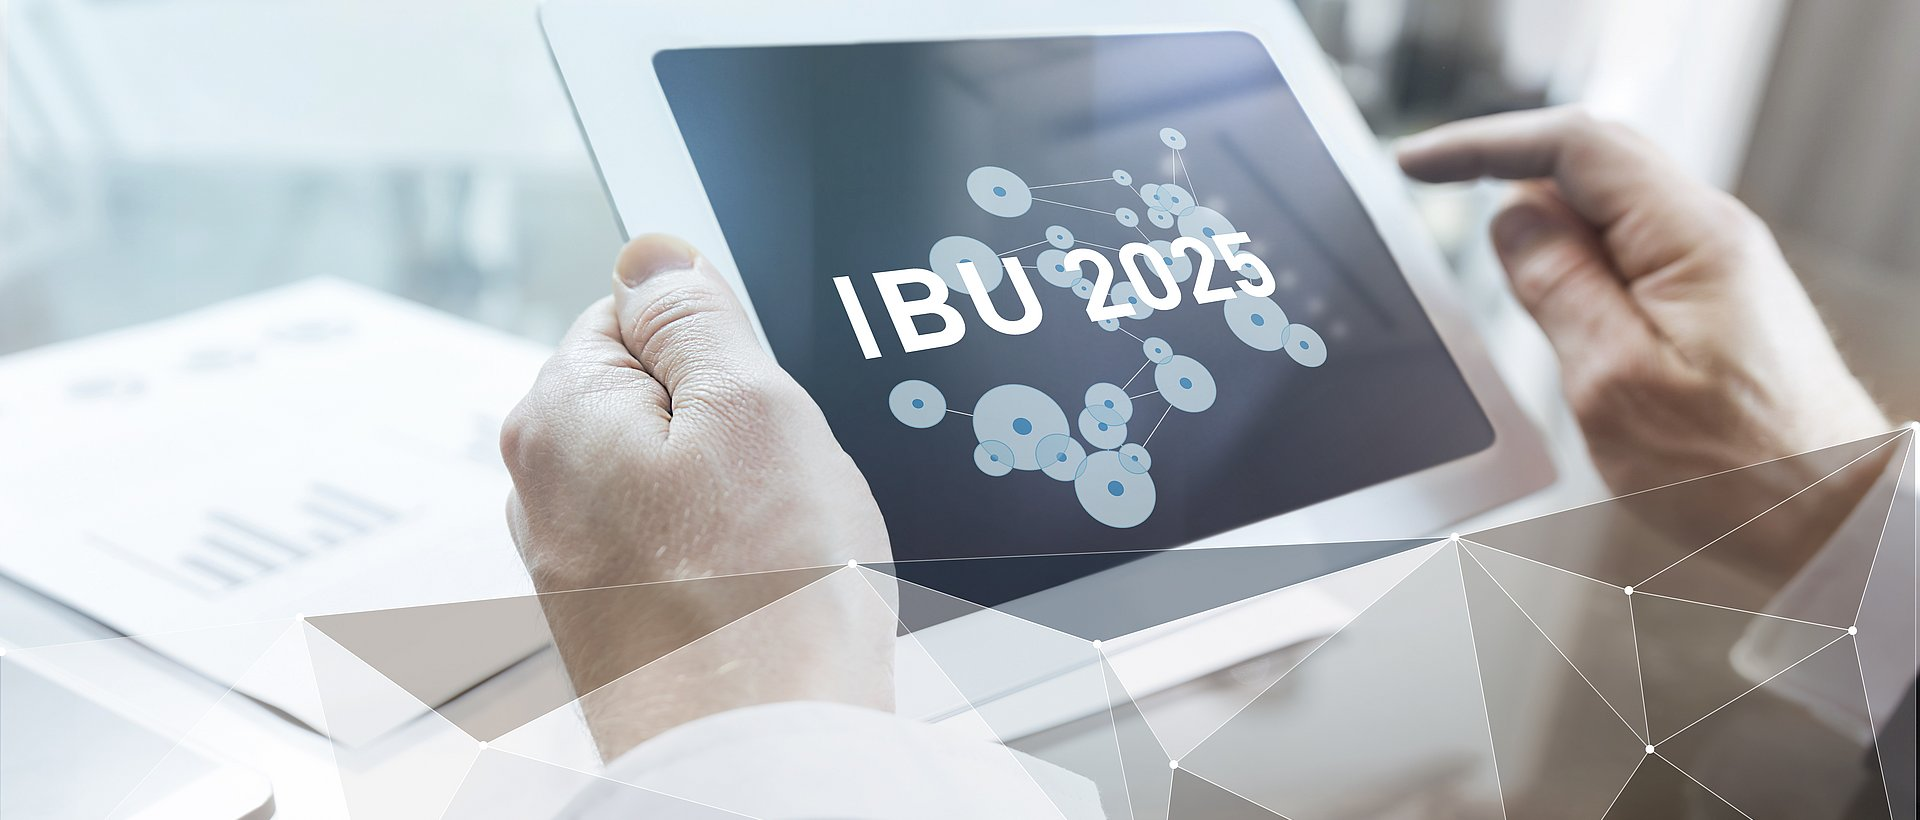 IBU-tec Plan 2020 Tablet für Investor Relations